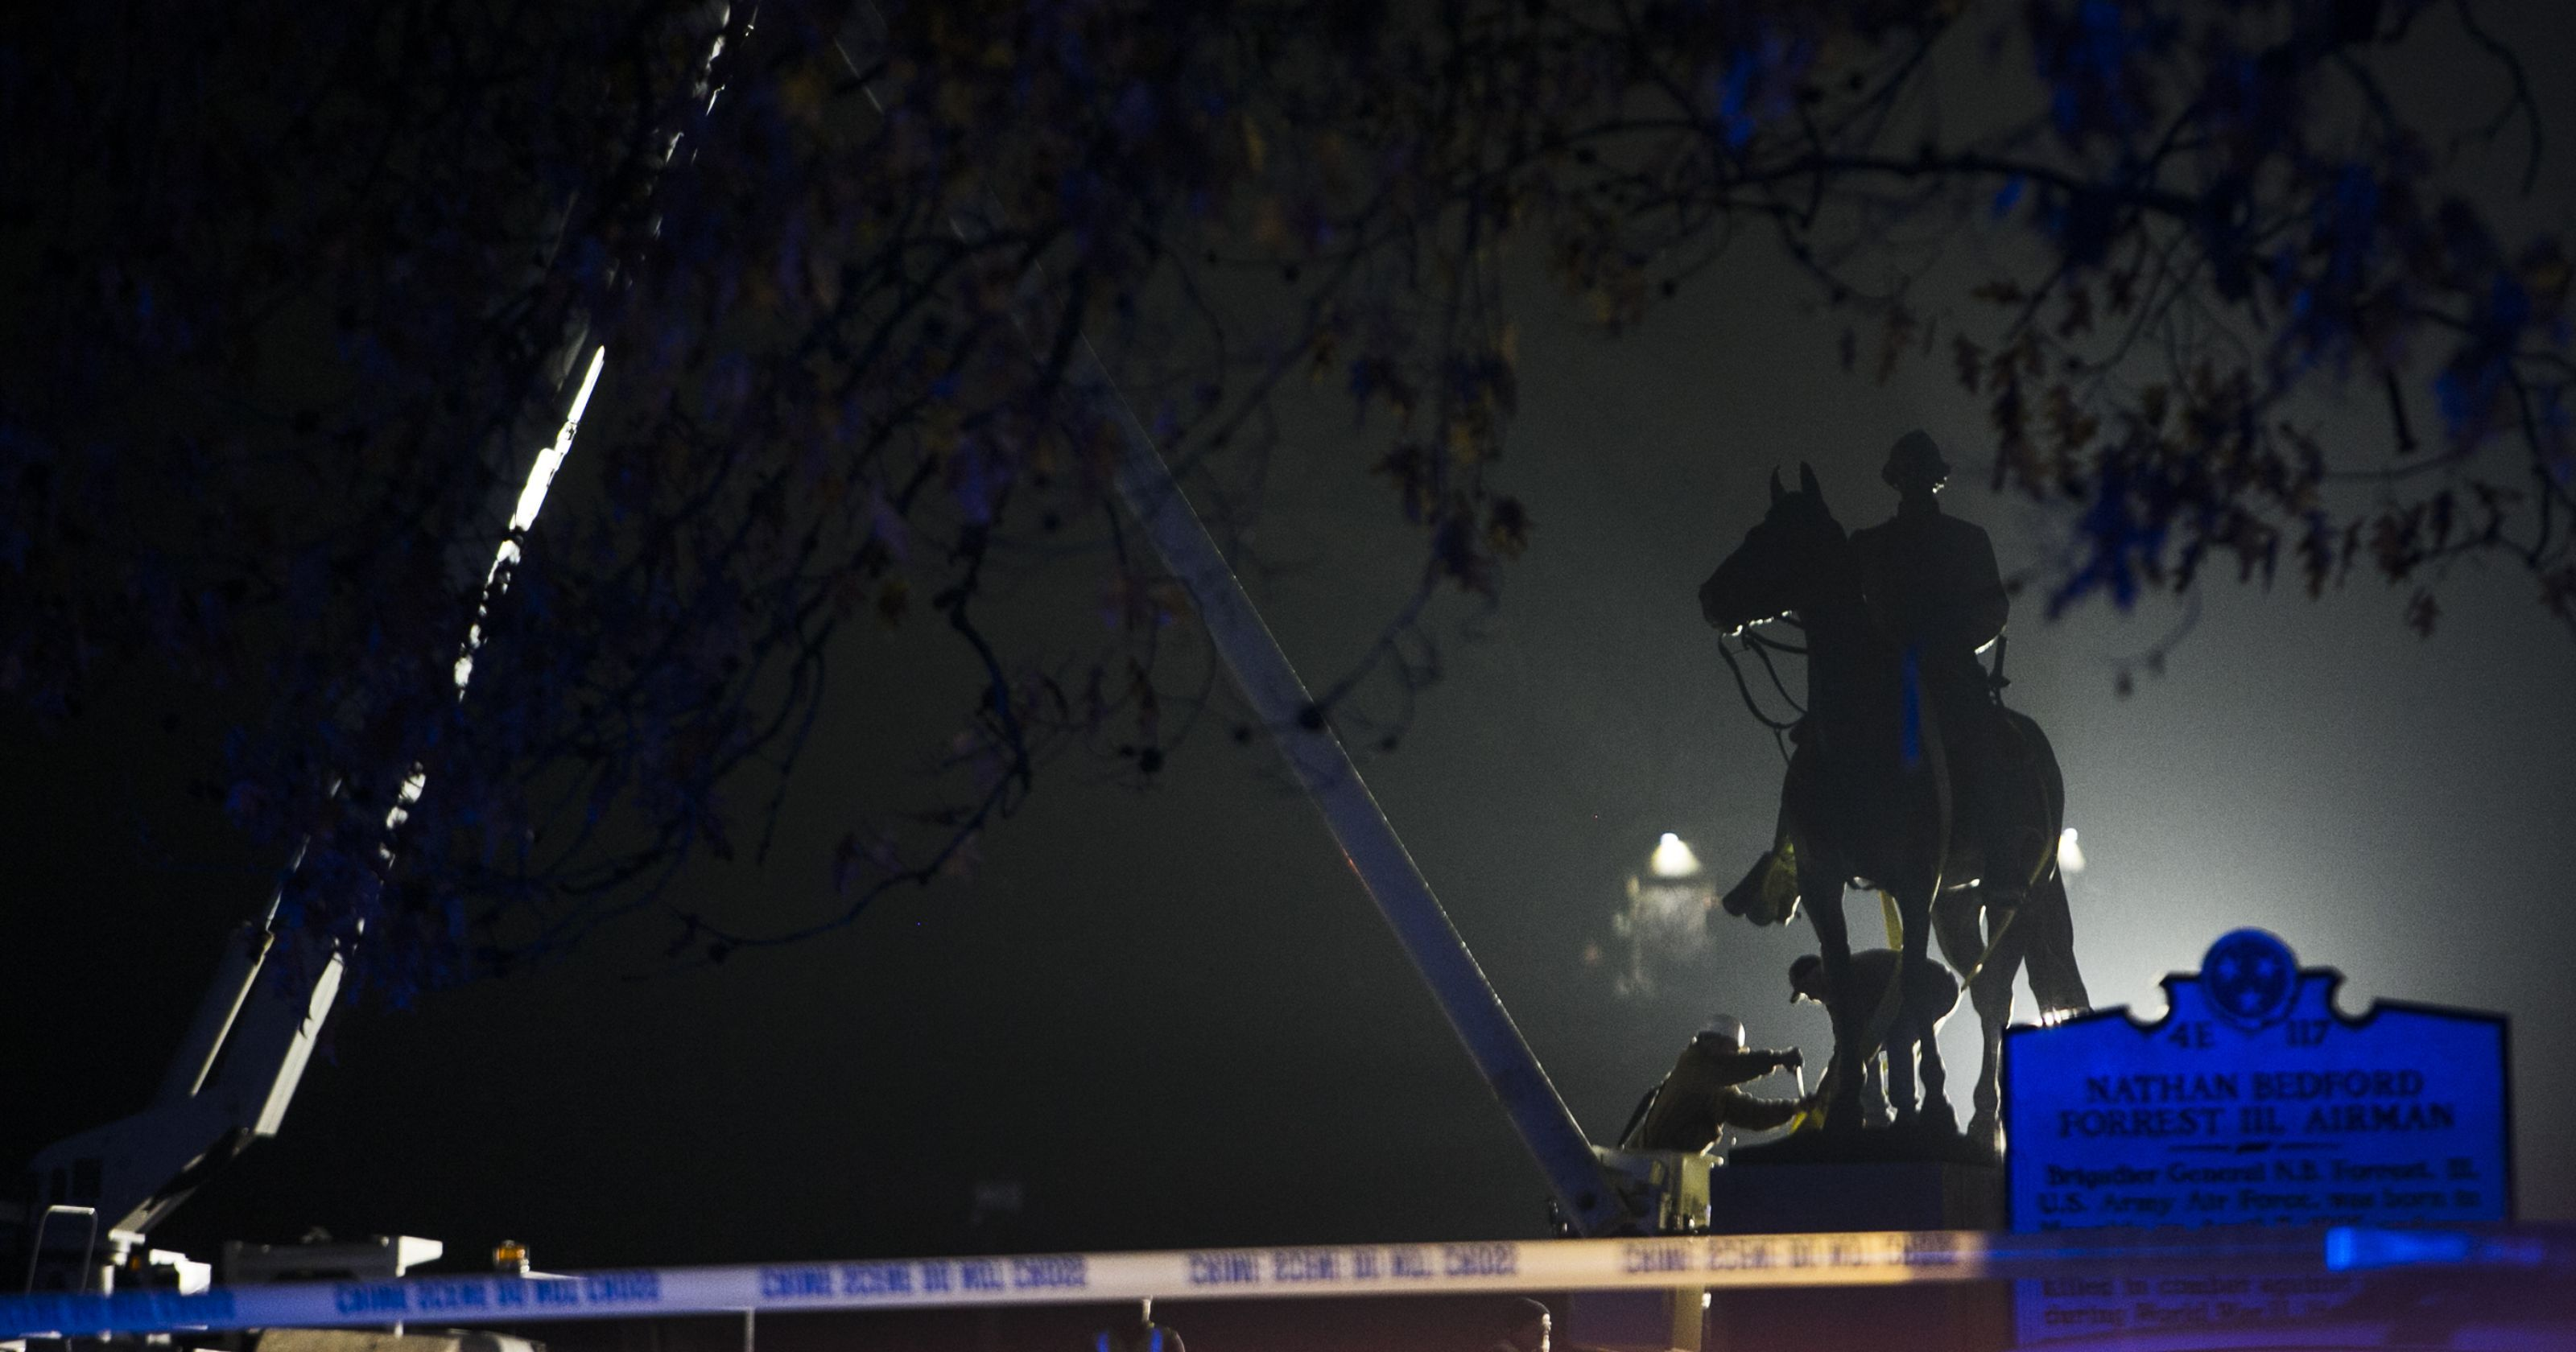 Judge: Removal of Confederate statues in Memphis was legal